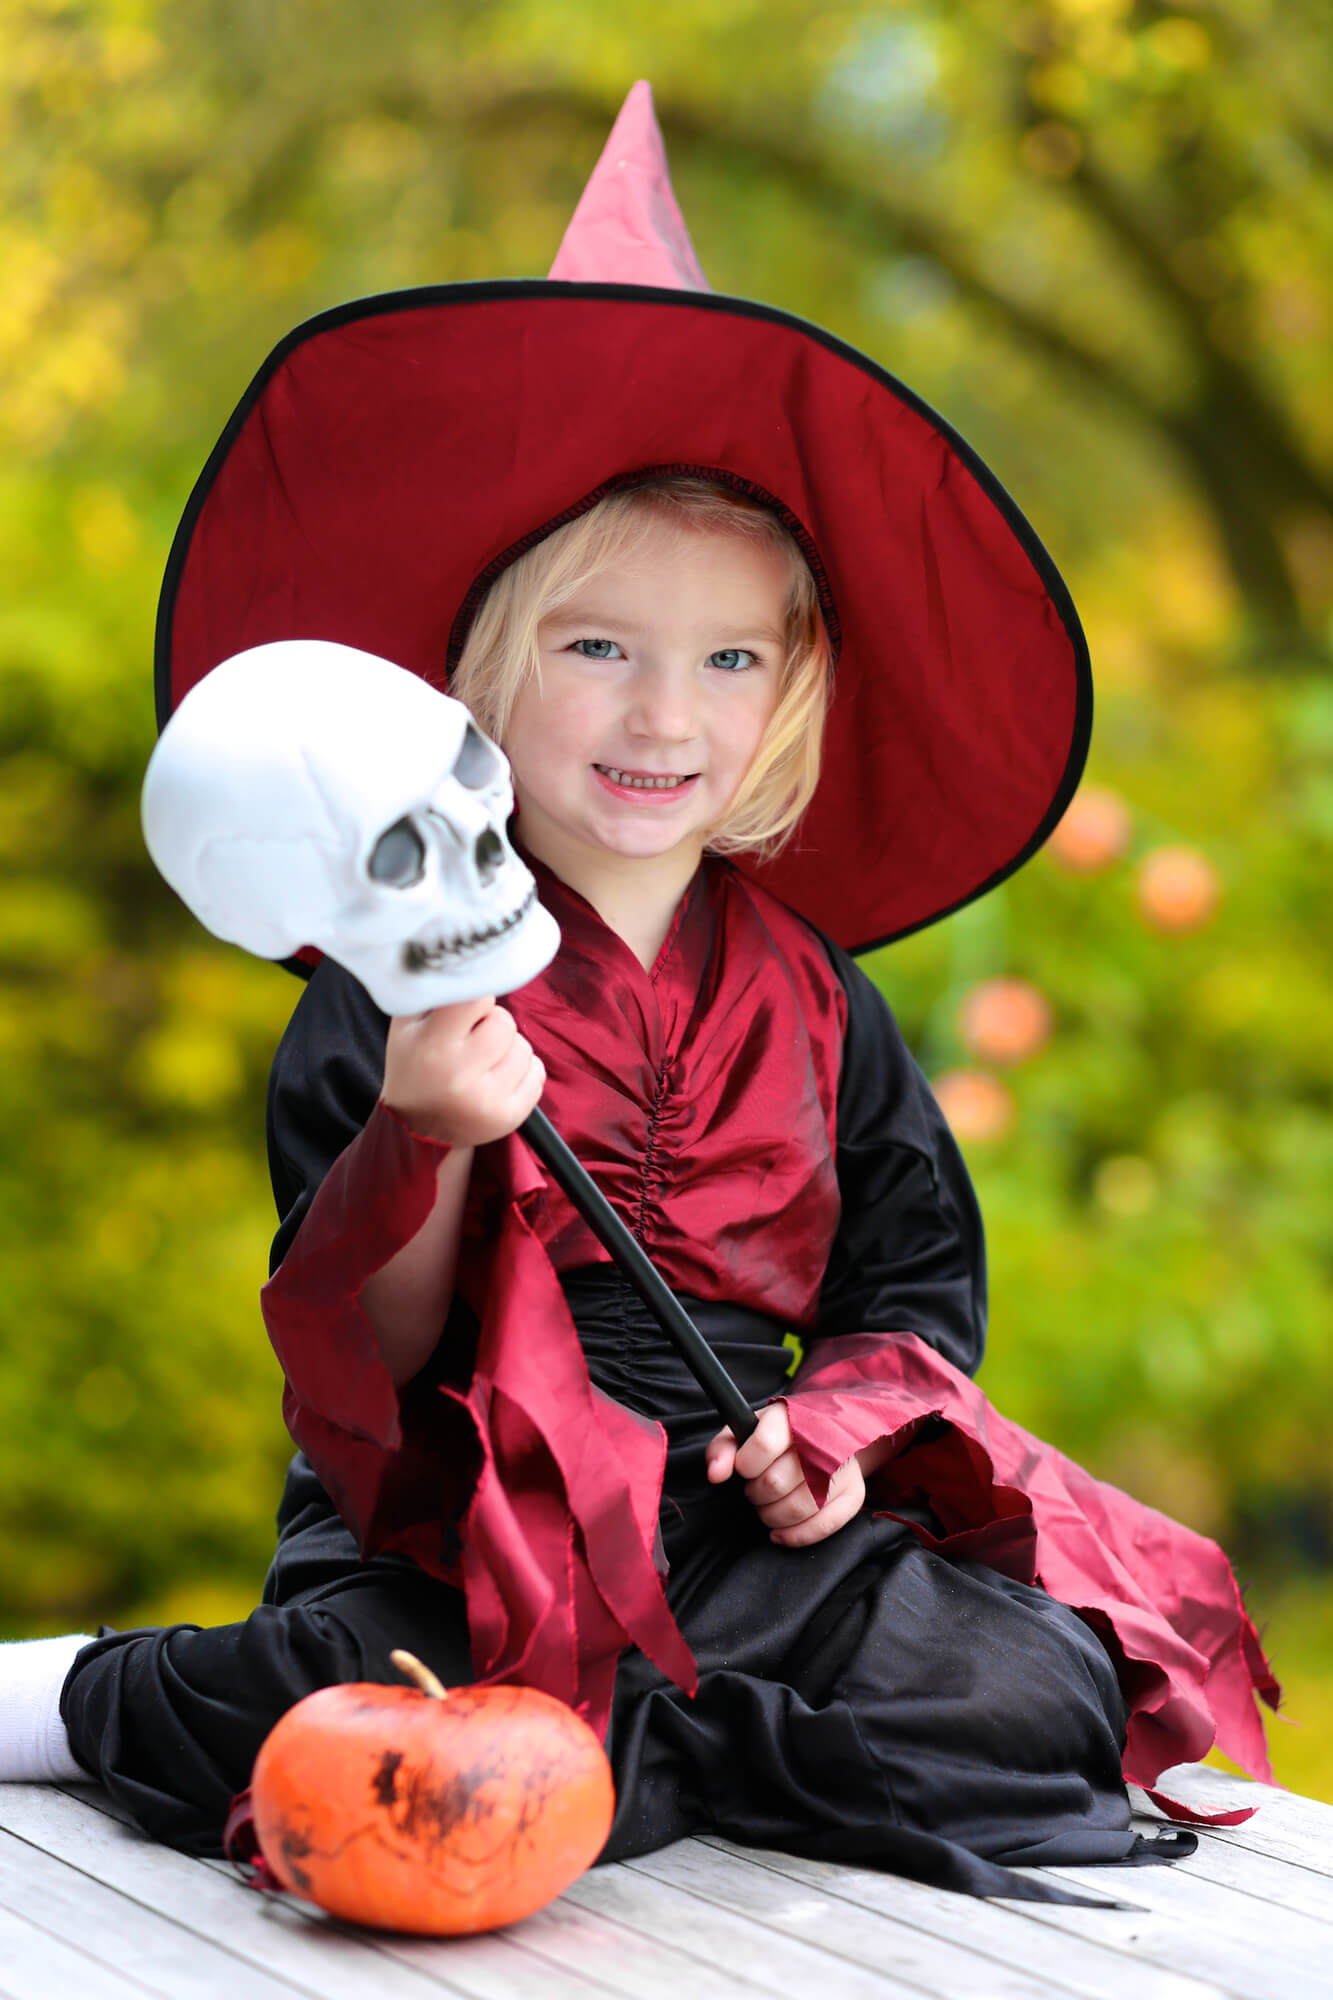 4 Creative Halloween Costume Ideas For Toddlers